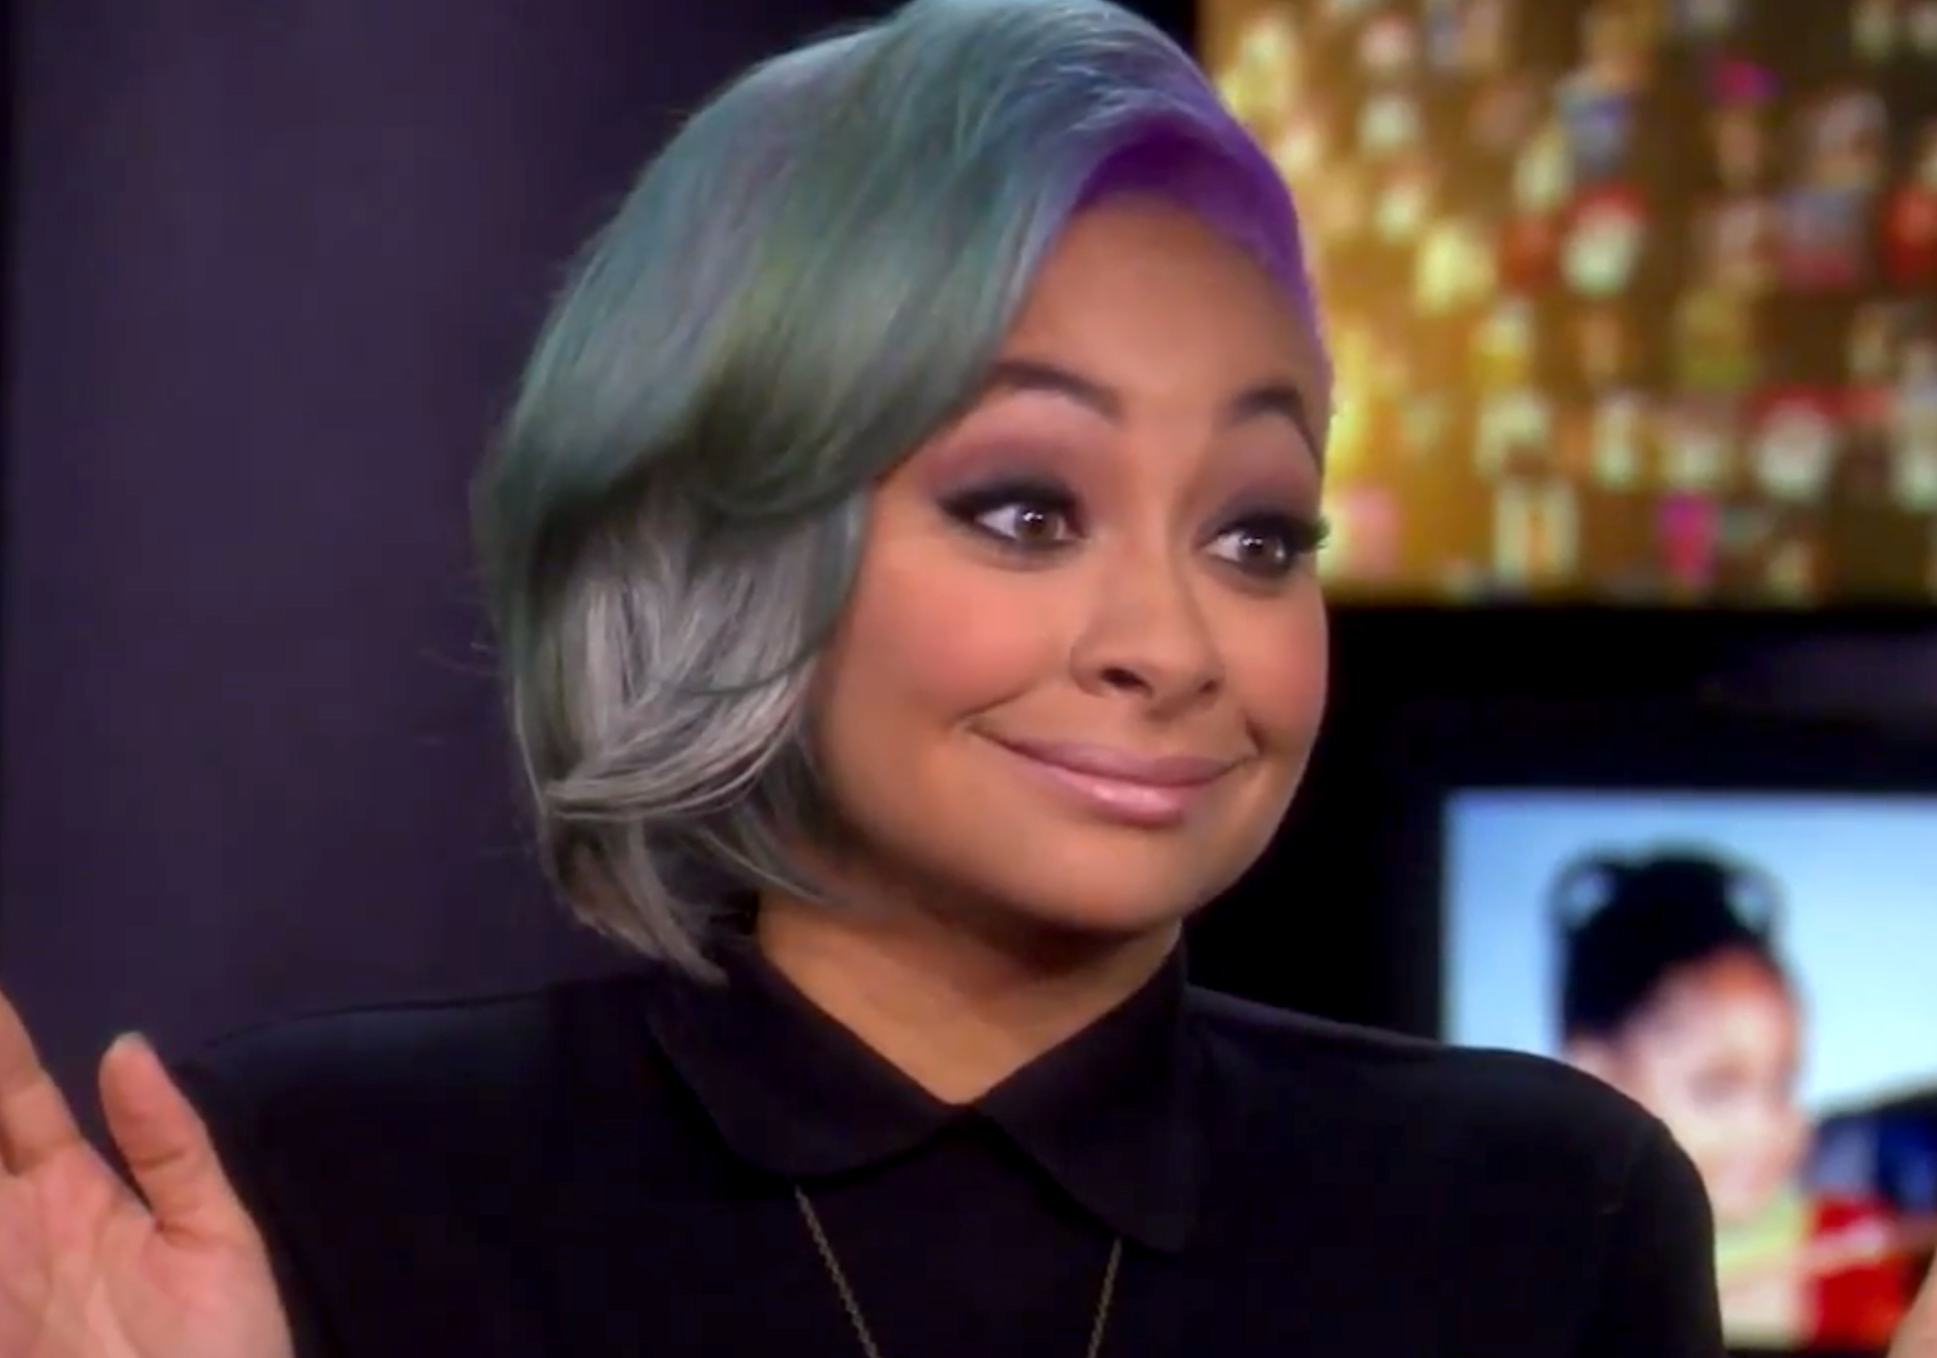 Raven-Symone has lost her damn mind.